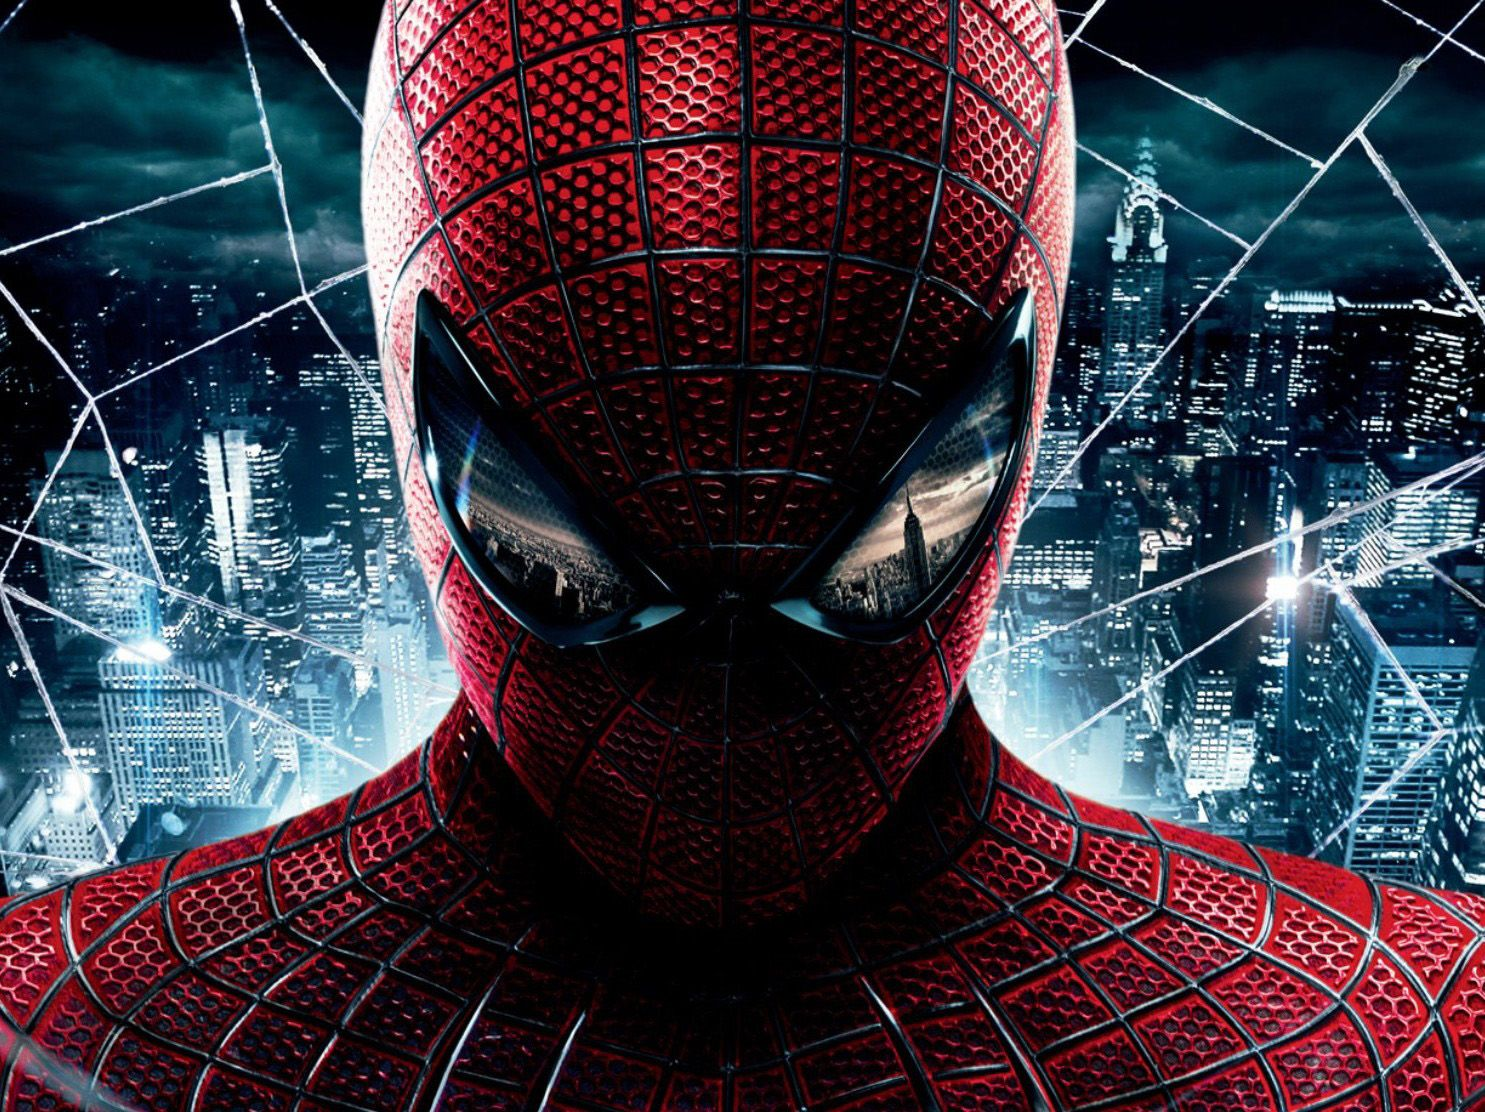 The Amazing Spider-Man 2 video game officially announced, more details